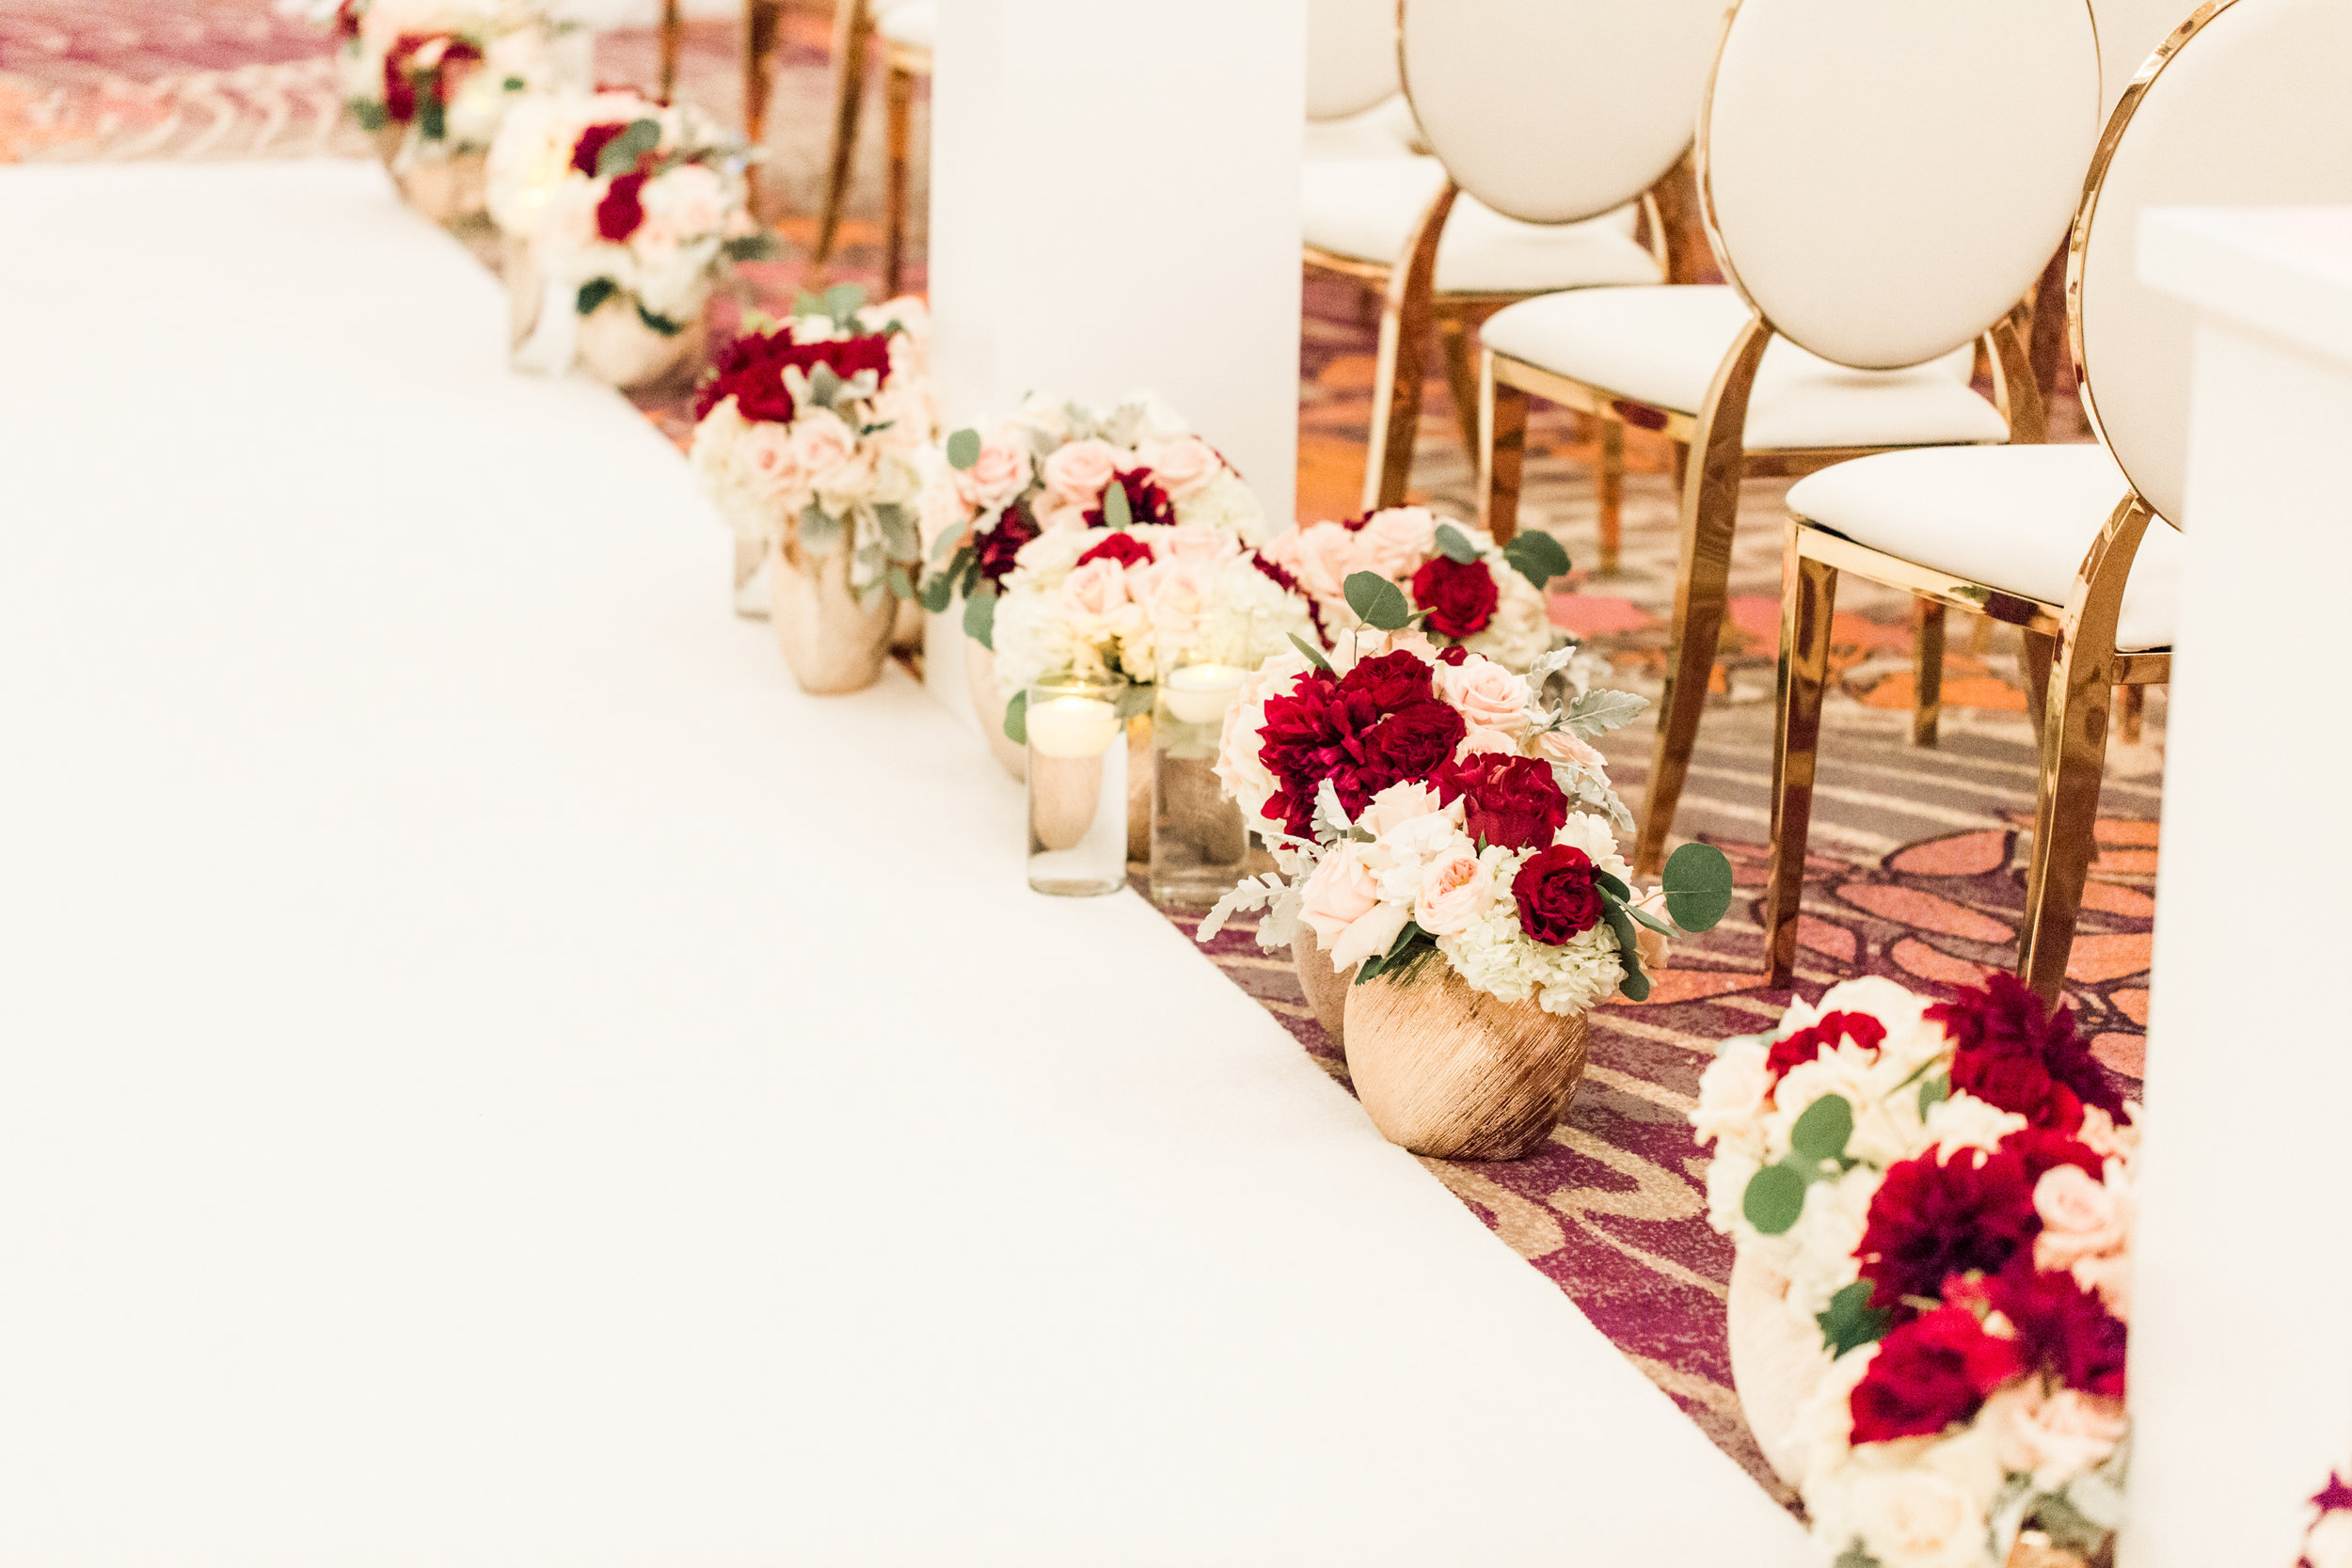 Low red and blush wedding ceremony aisle details.Luxury wedding at the Mandarin Oriental with a color scheme of white, blush, and pops of wine red produced by Las Vegas Wedding Planner Andrea Eppolito with photos by Stephen Salazar Photography.